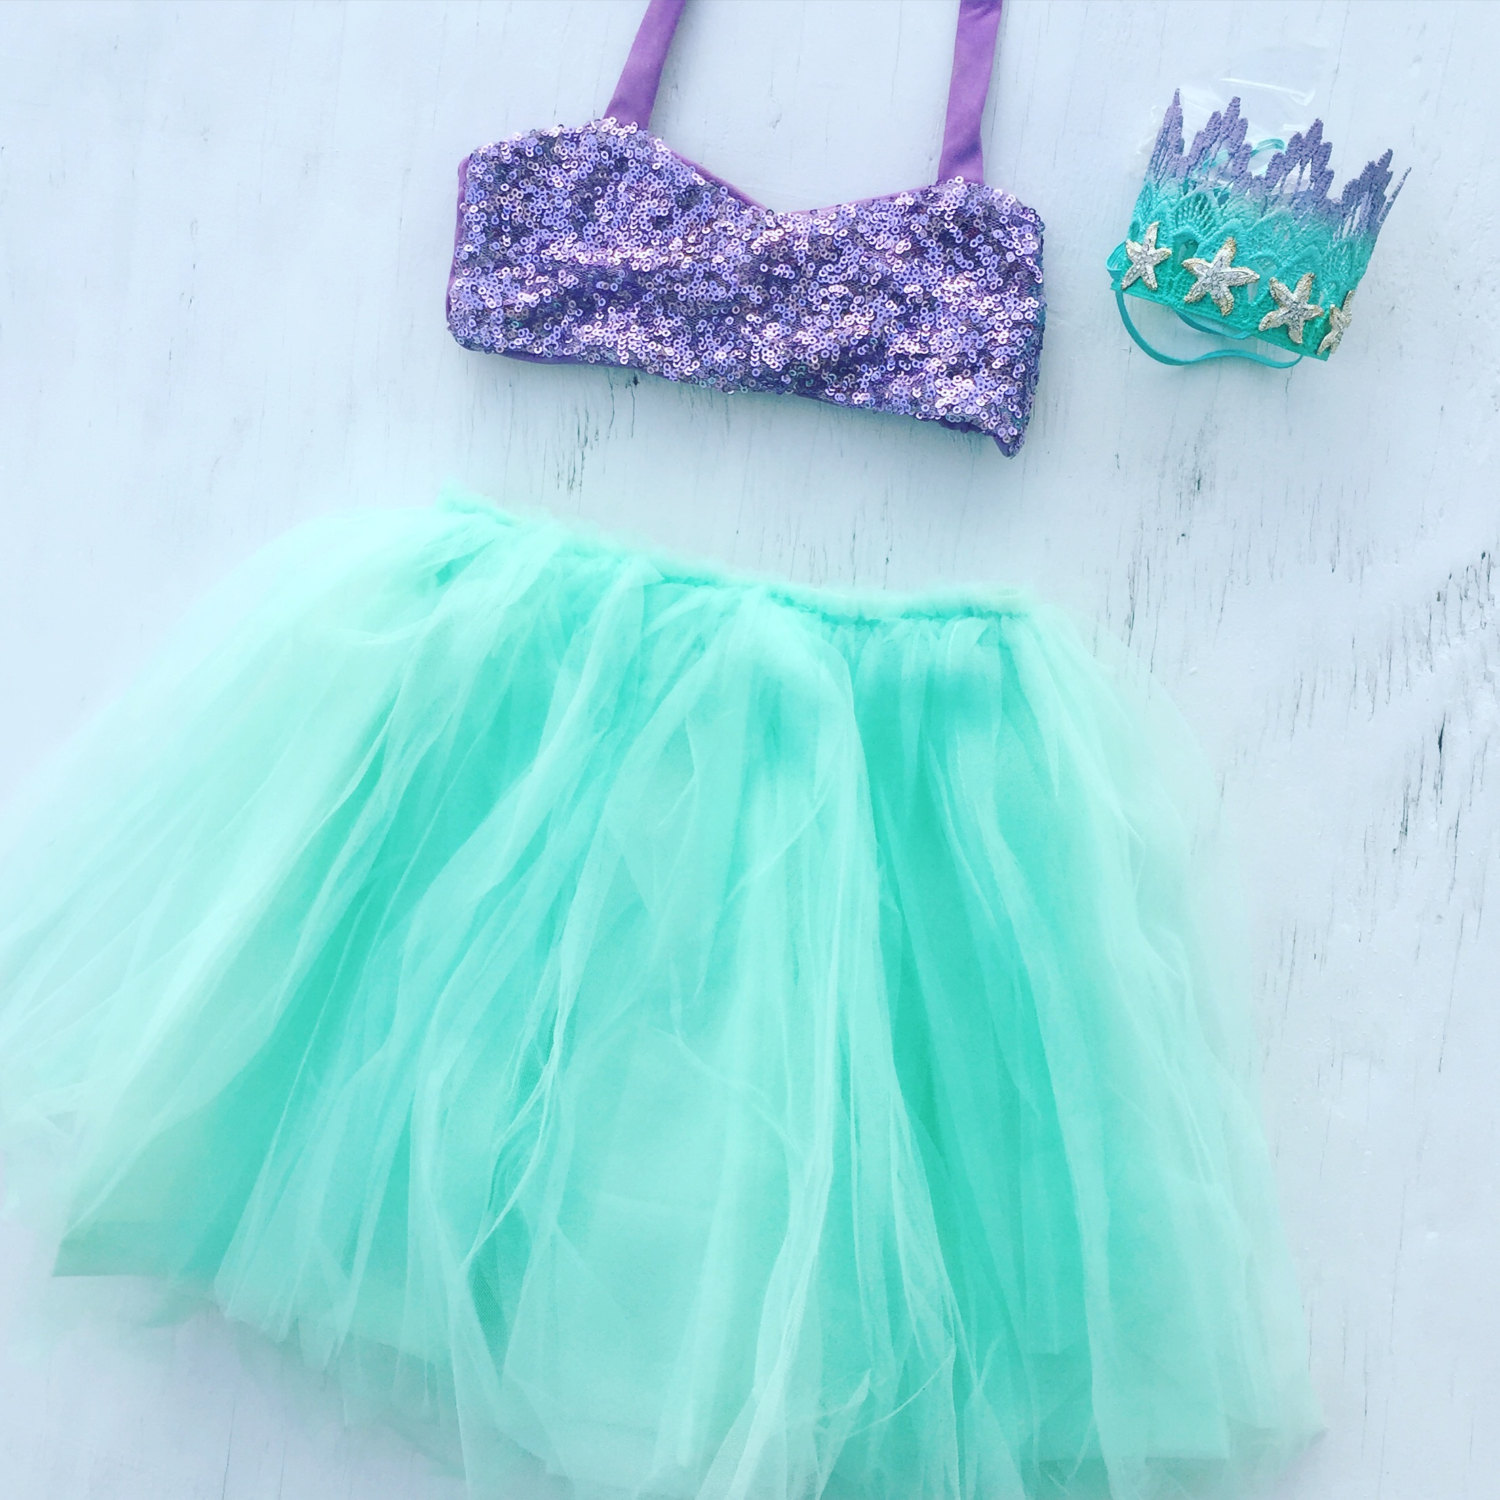 Mermaid Costume with Sequins for the Mermaid Birthday Party Girl